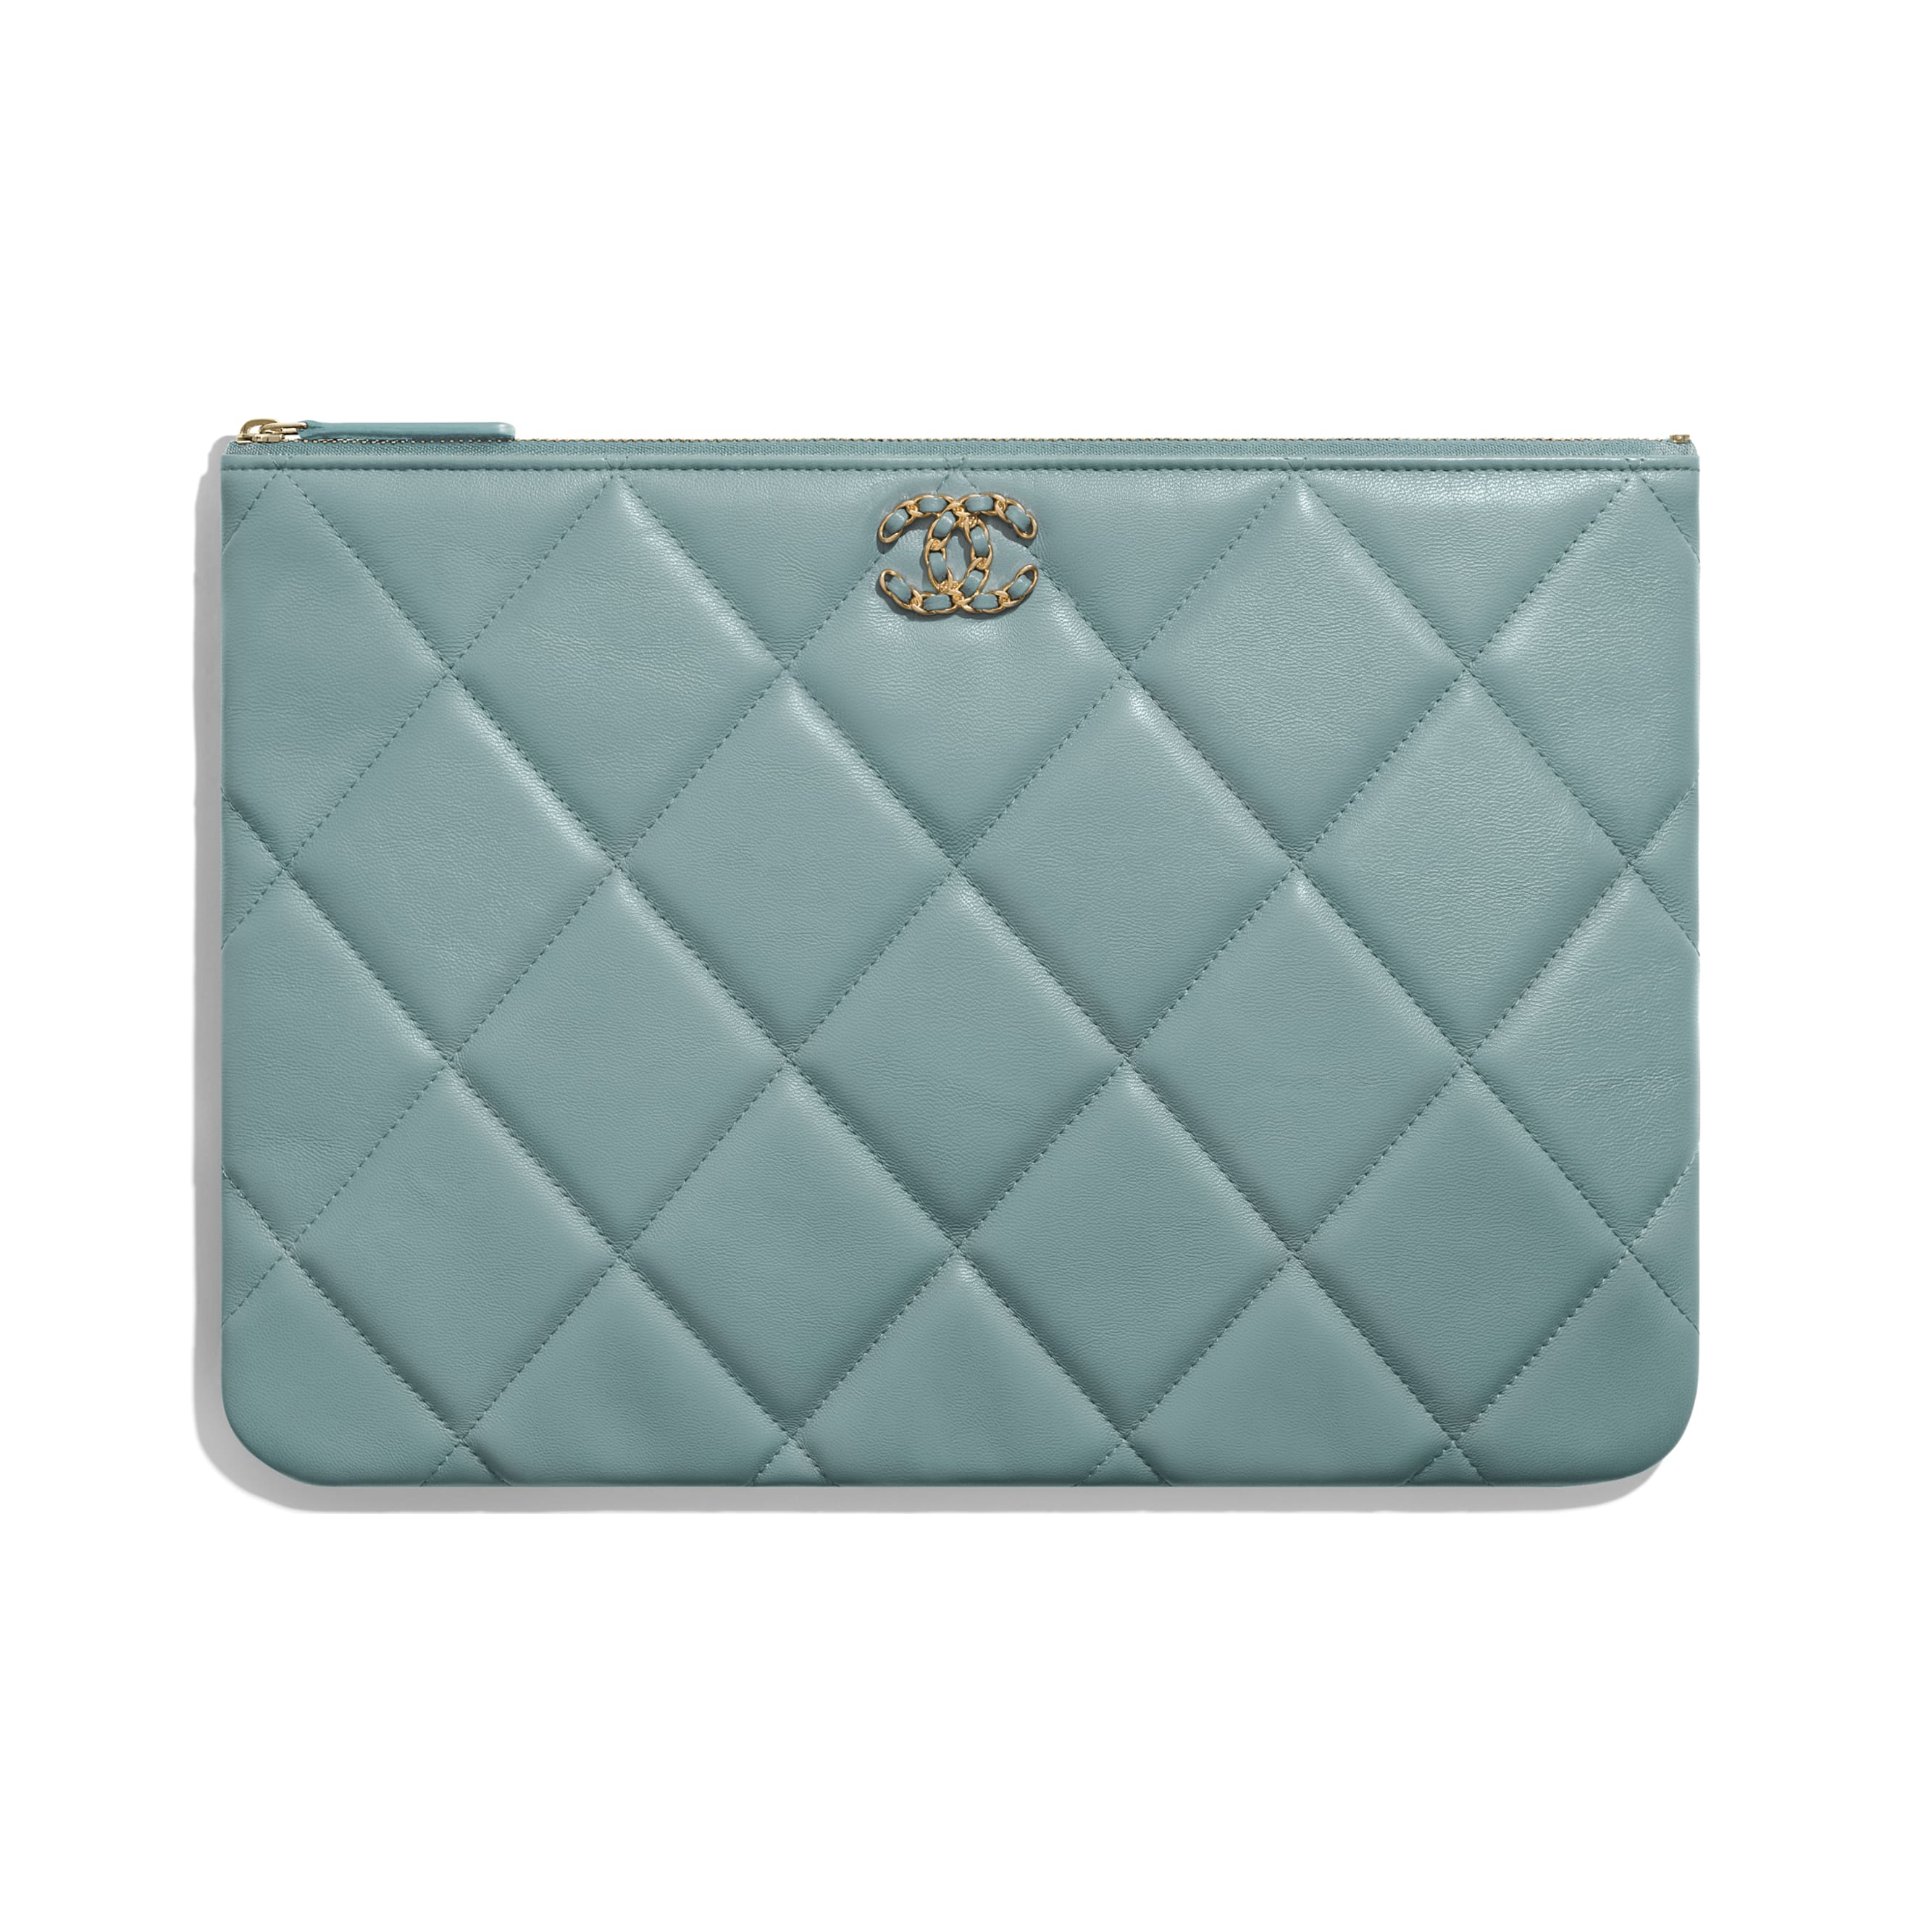 CHANEL 19 Large Pouch - Blue - Shiny Goatskin, Gold-Tone, Silver-Tone & Ruthenium-Finish Metal - Default view - see standard sized version